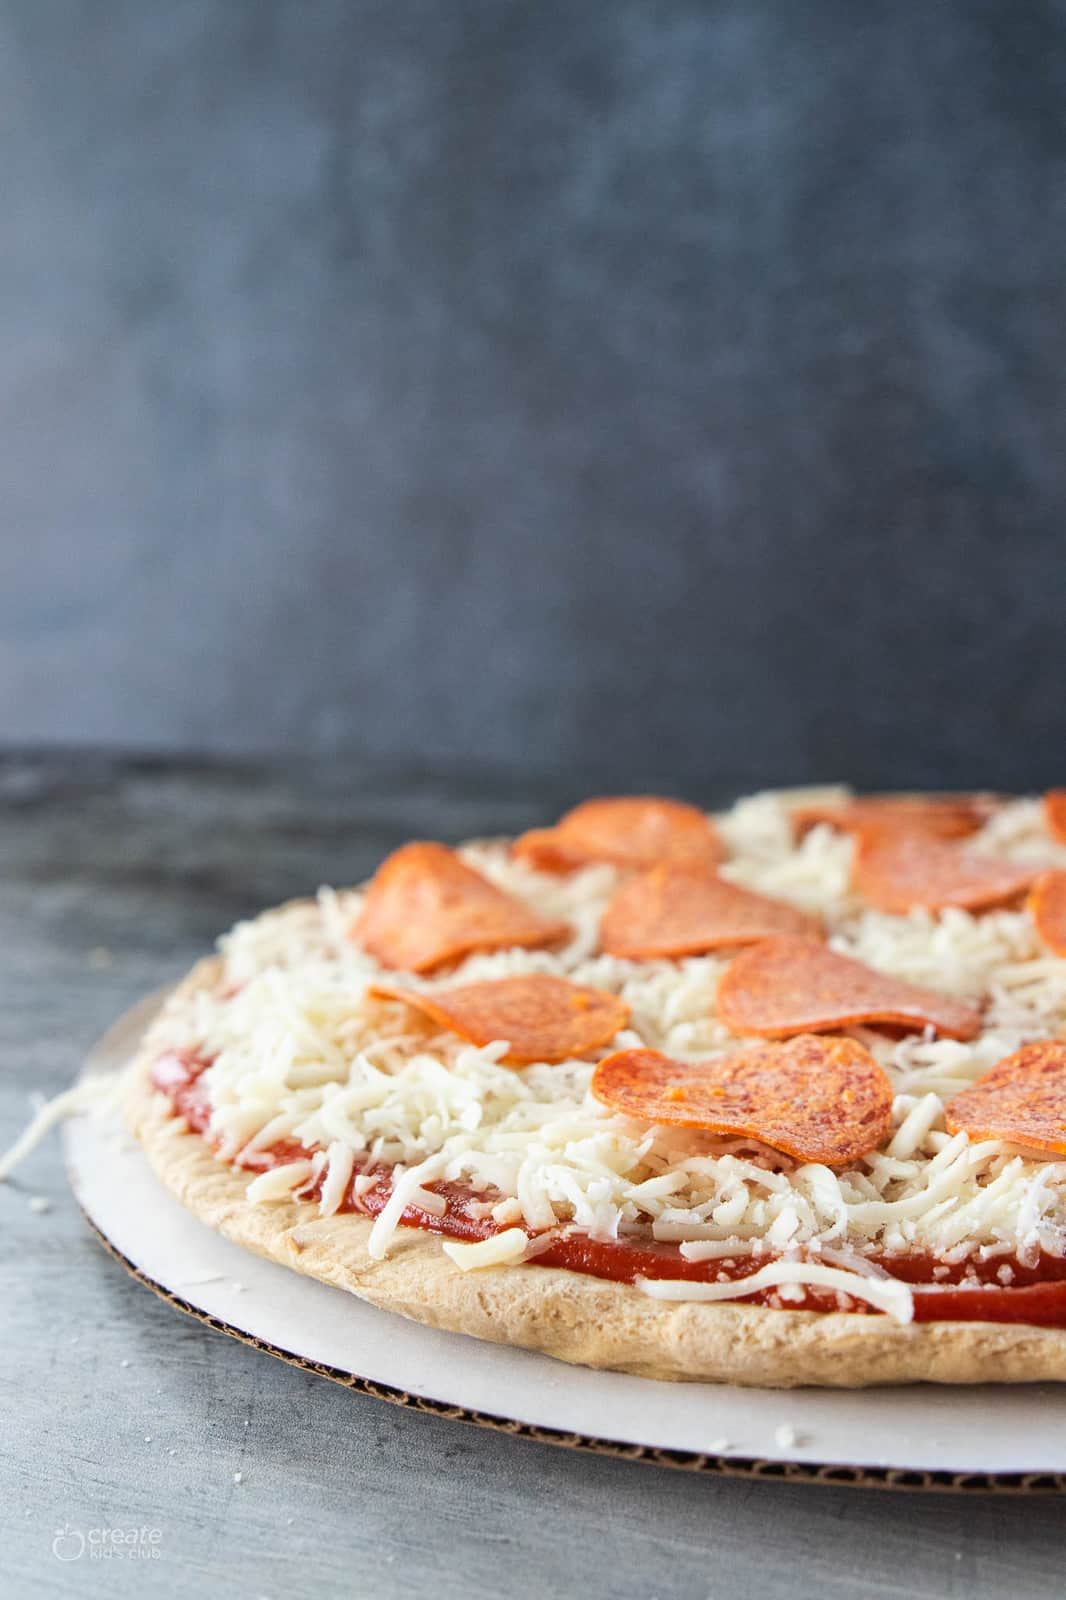 pizza crust dough topped with sauce, cheese and pepperoni